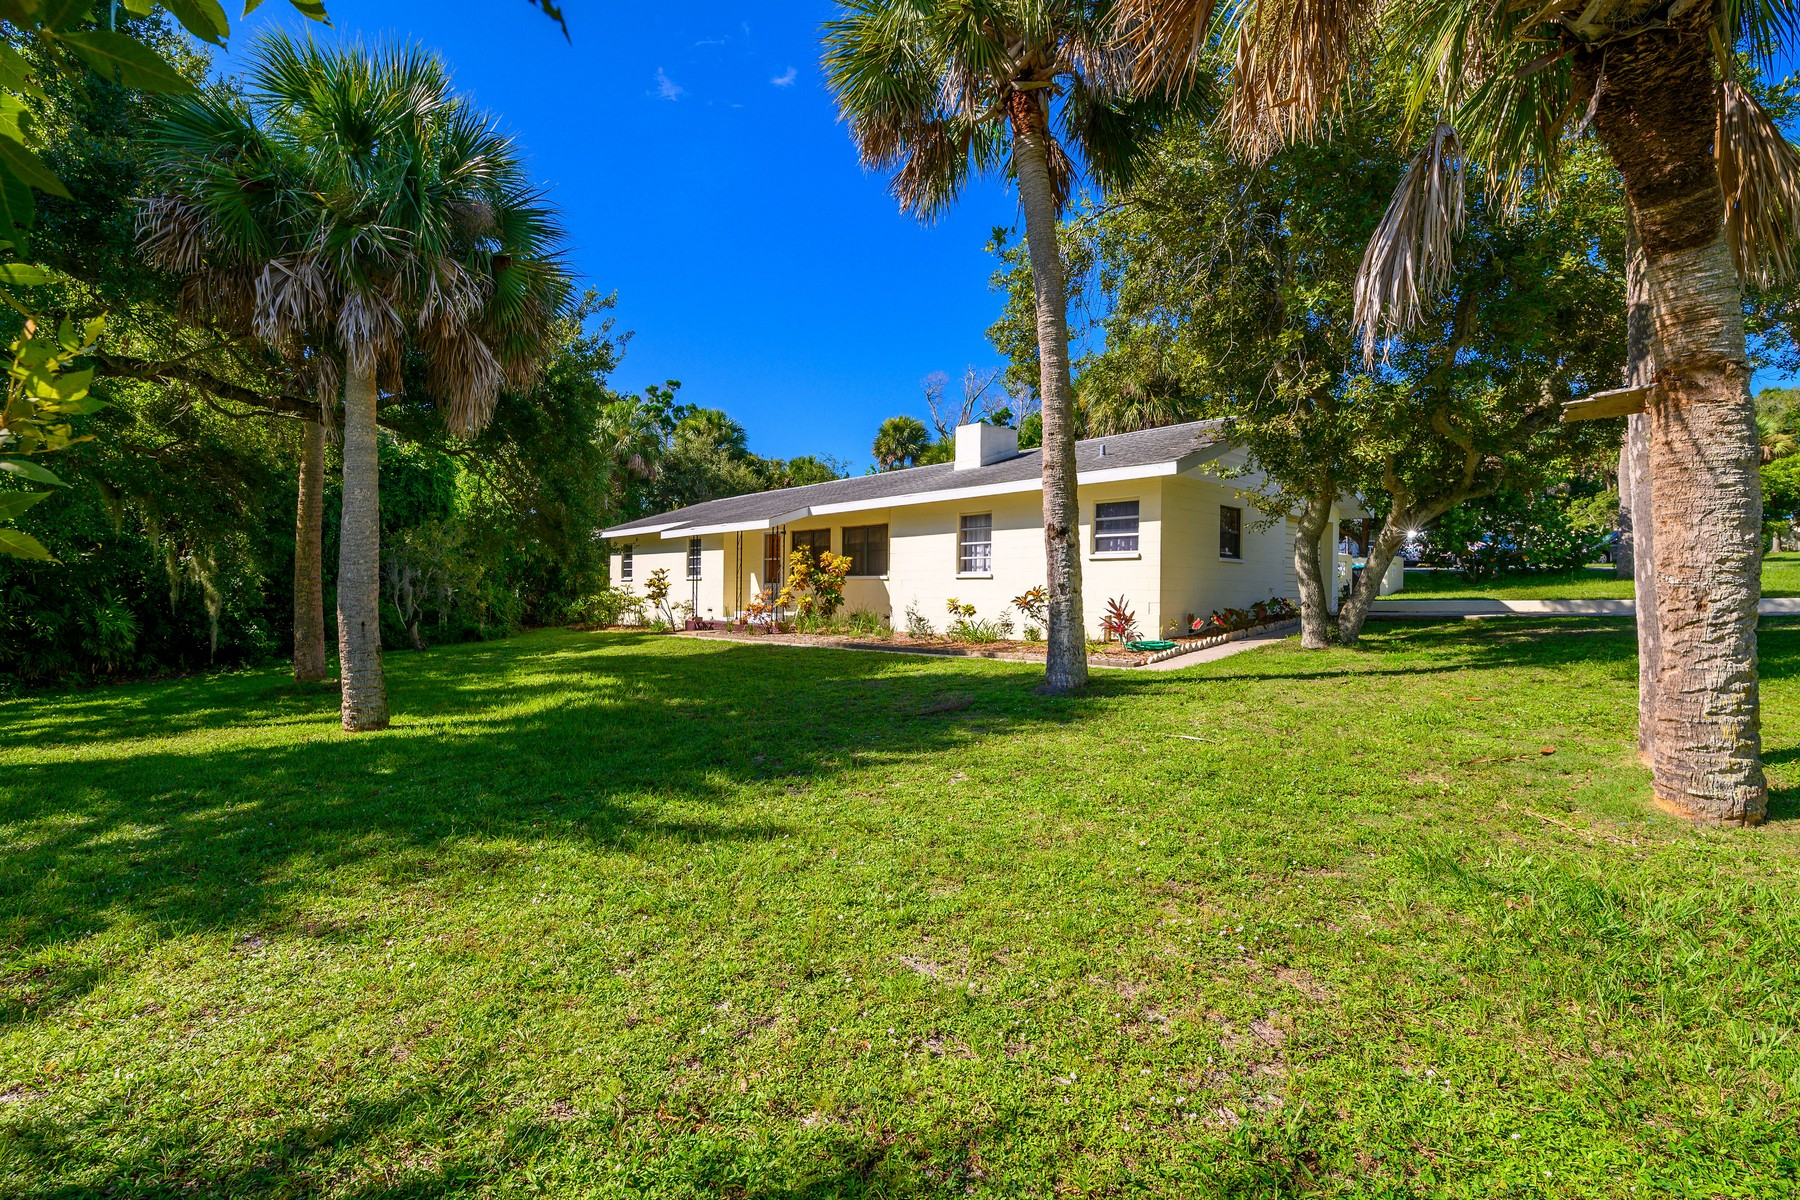 Single Family Homes for Active at Charming Home Nestled in Unique Riverfront Community 1419 Anglers Drive NE Palm Bay, Florida 32905 United States